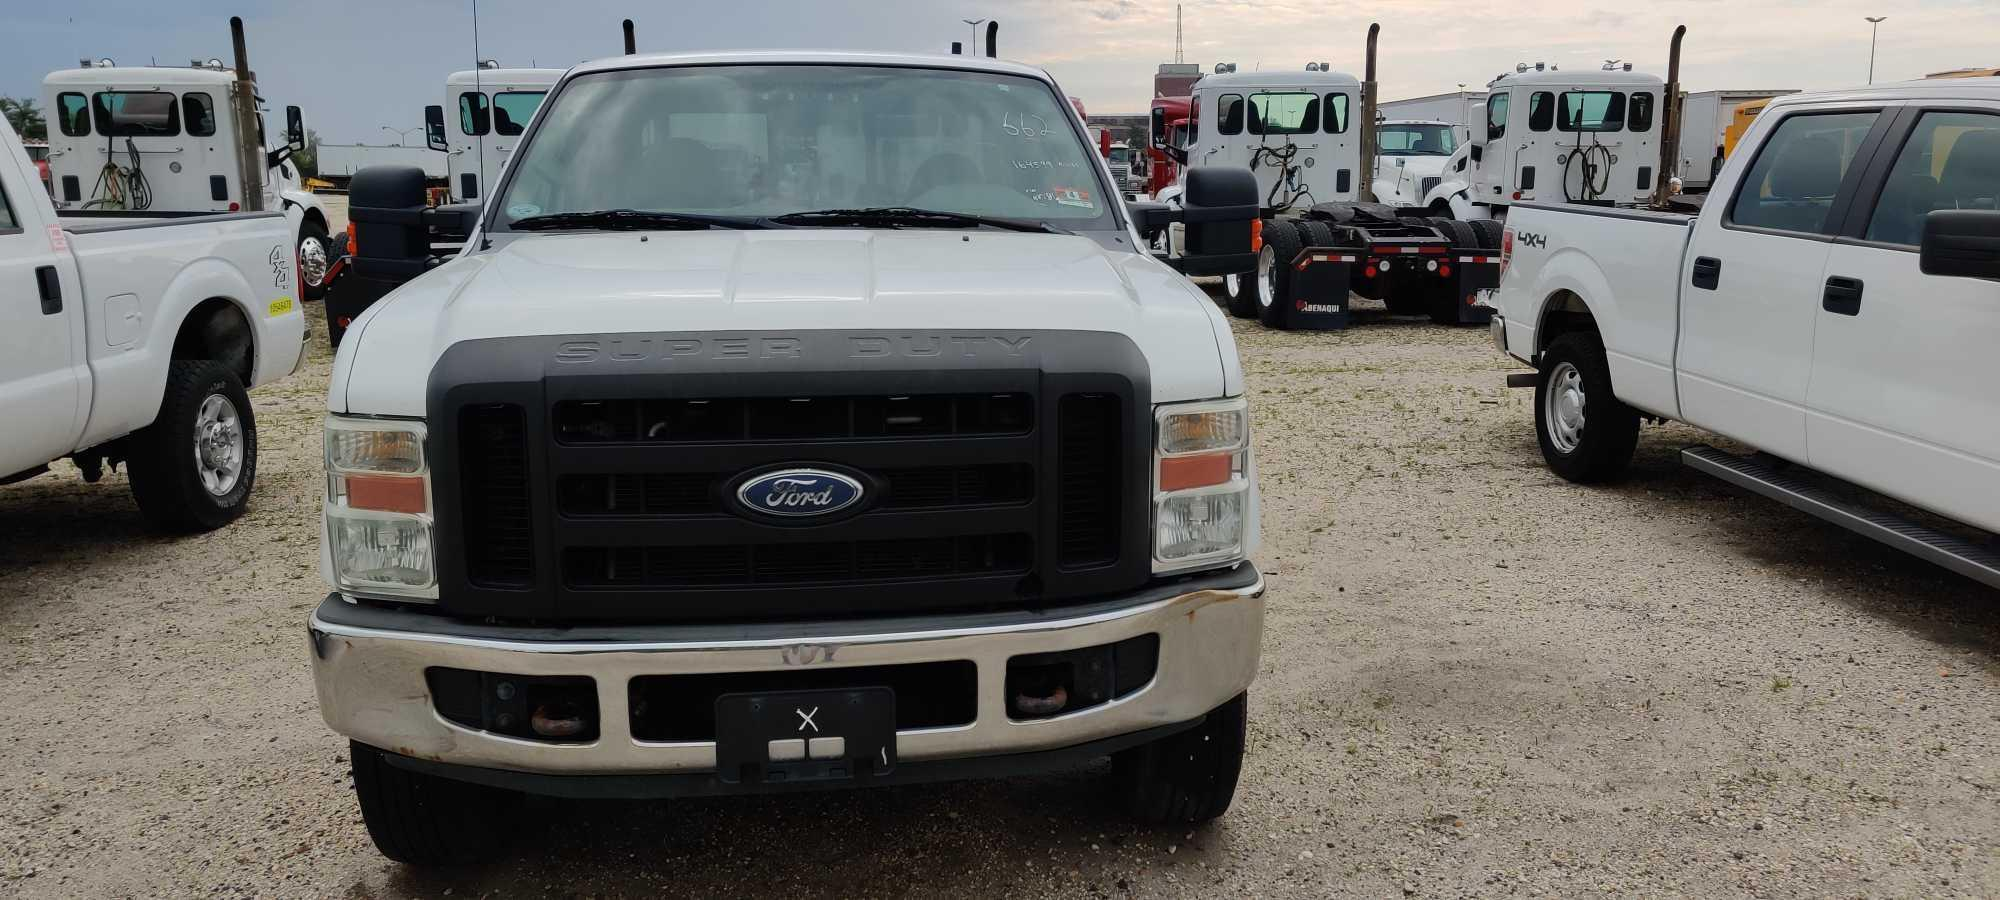 2008 FORD F250 PICKUP TRUCK VN:1FTSX21588EA40786